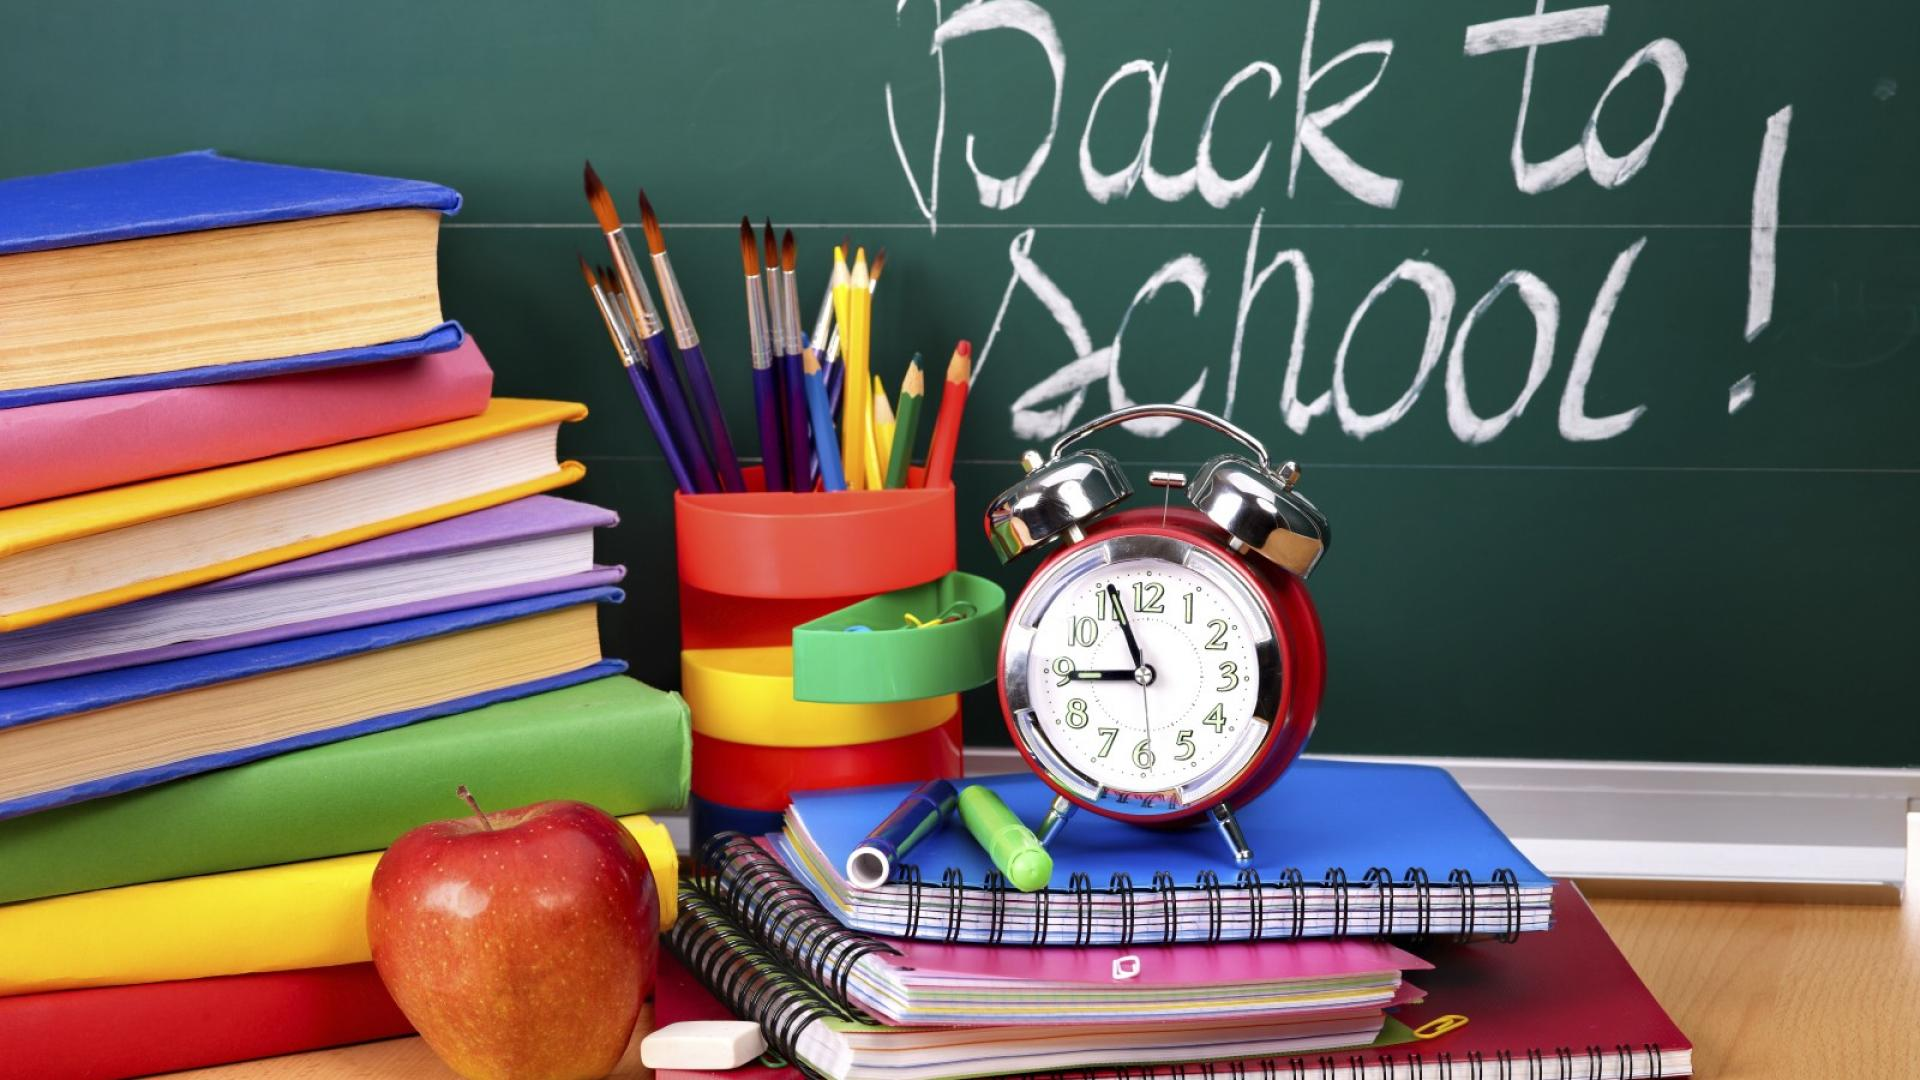 Back To School Wallpapers Top Free Back To School Backgrounds Wallpaperaccess